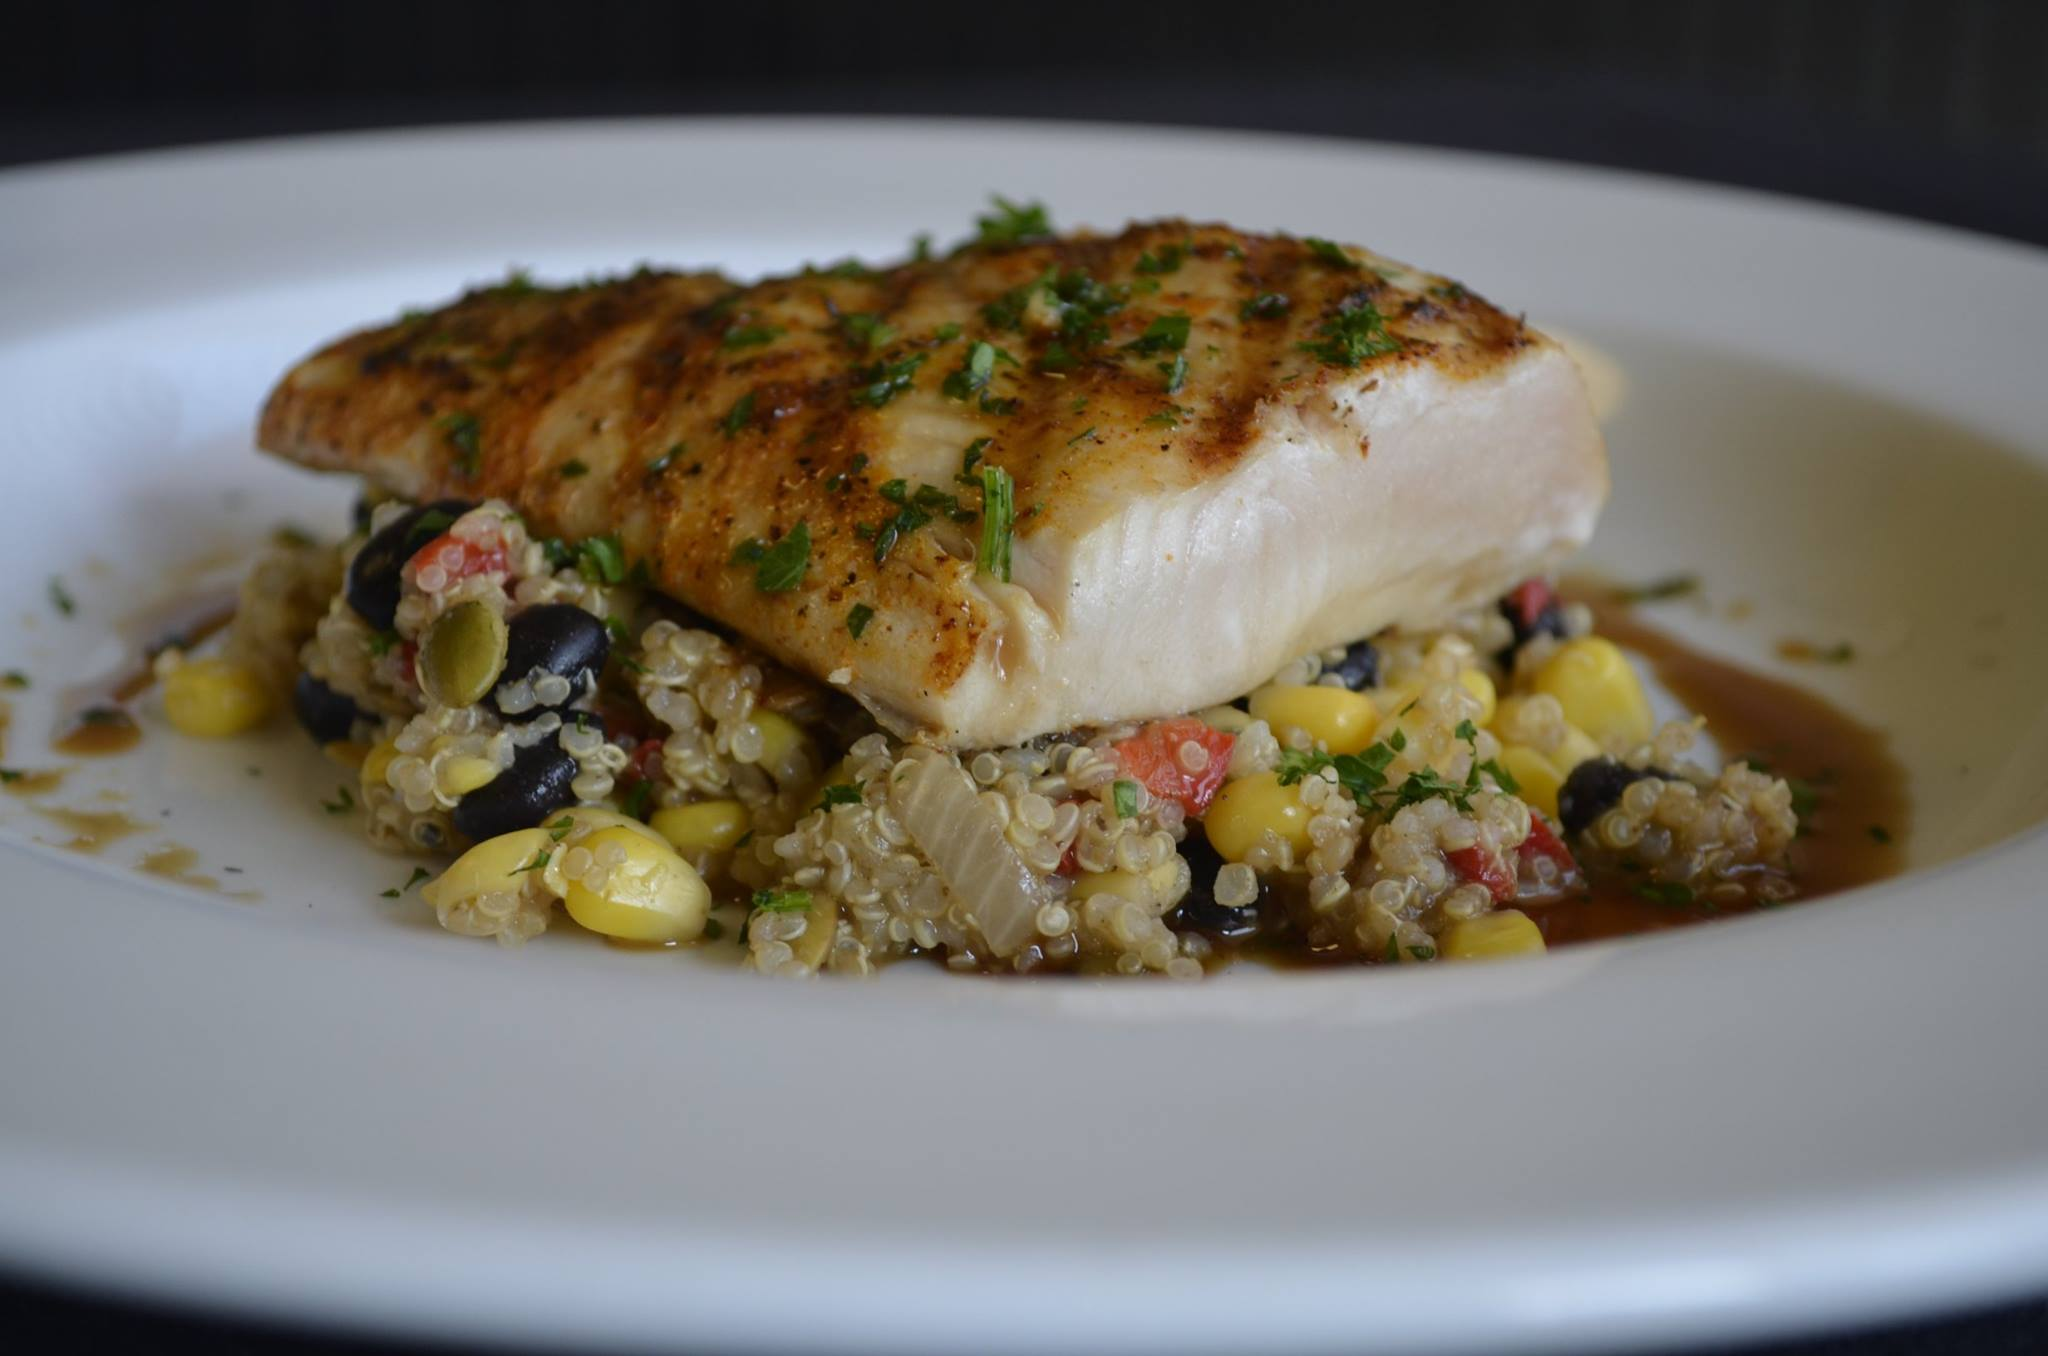 Grilled salmon over quinoa